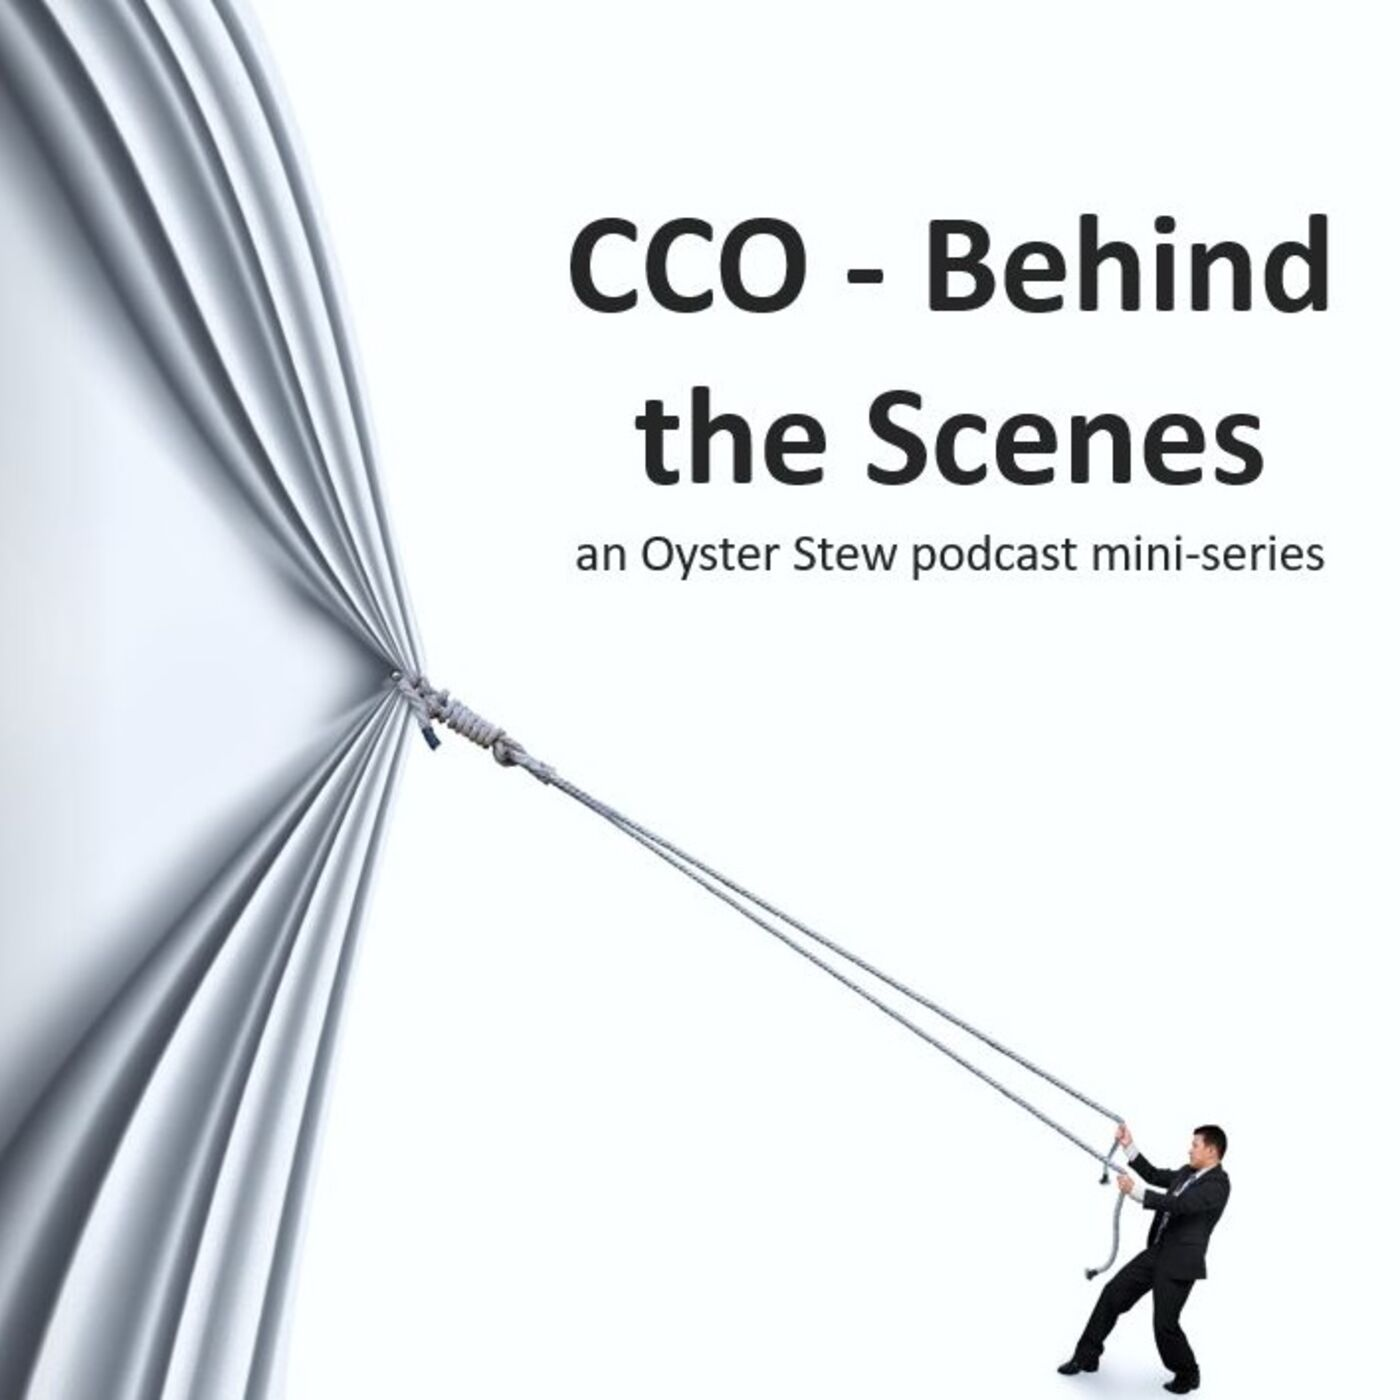 New Mini-Series!  CCO - Behind the Scenes